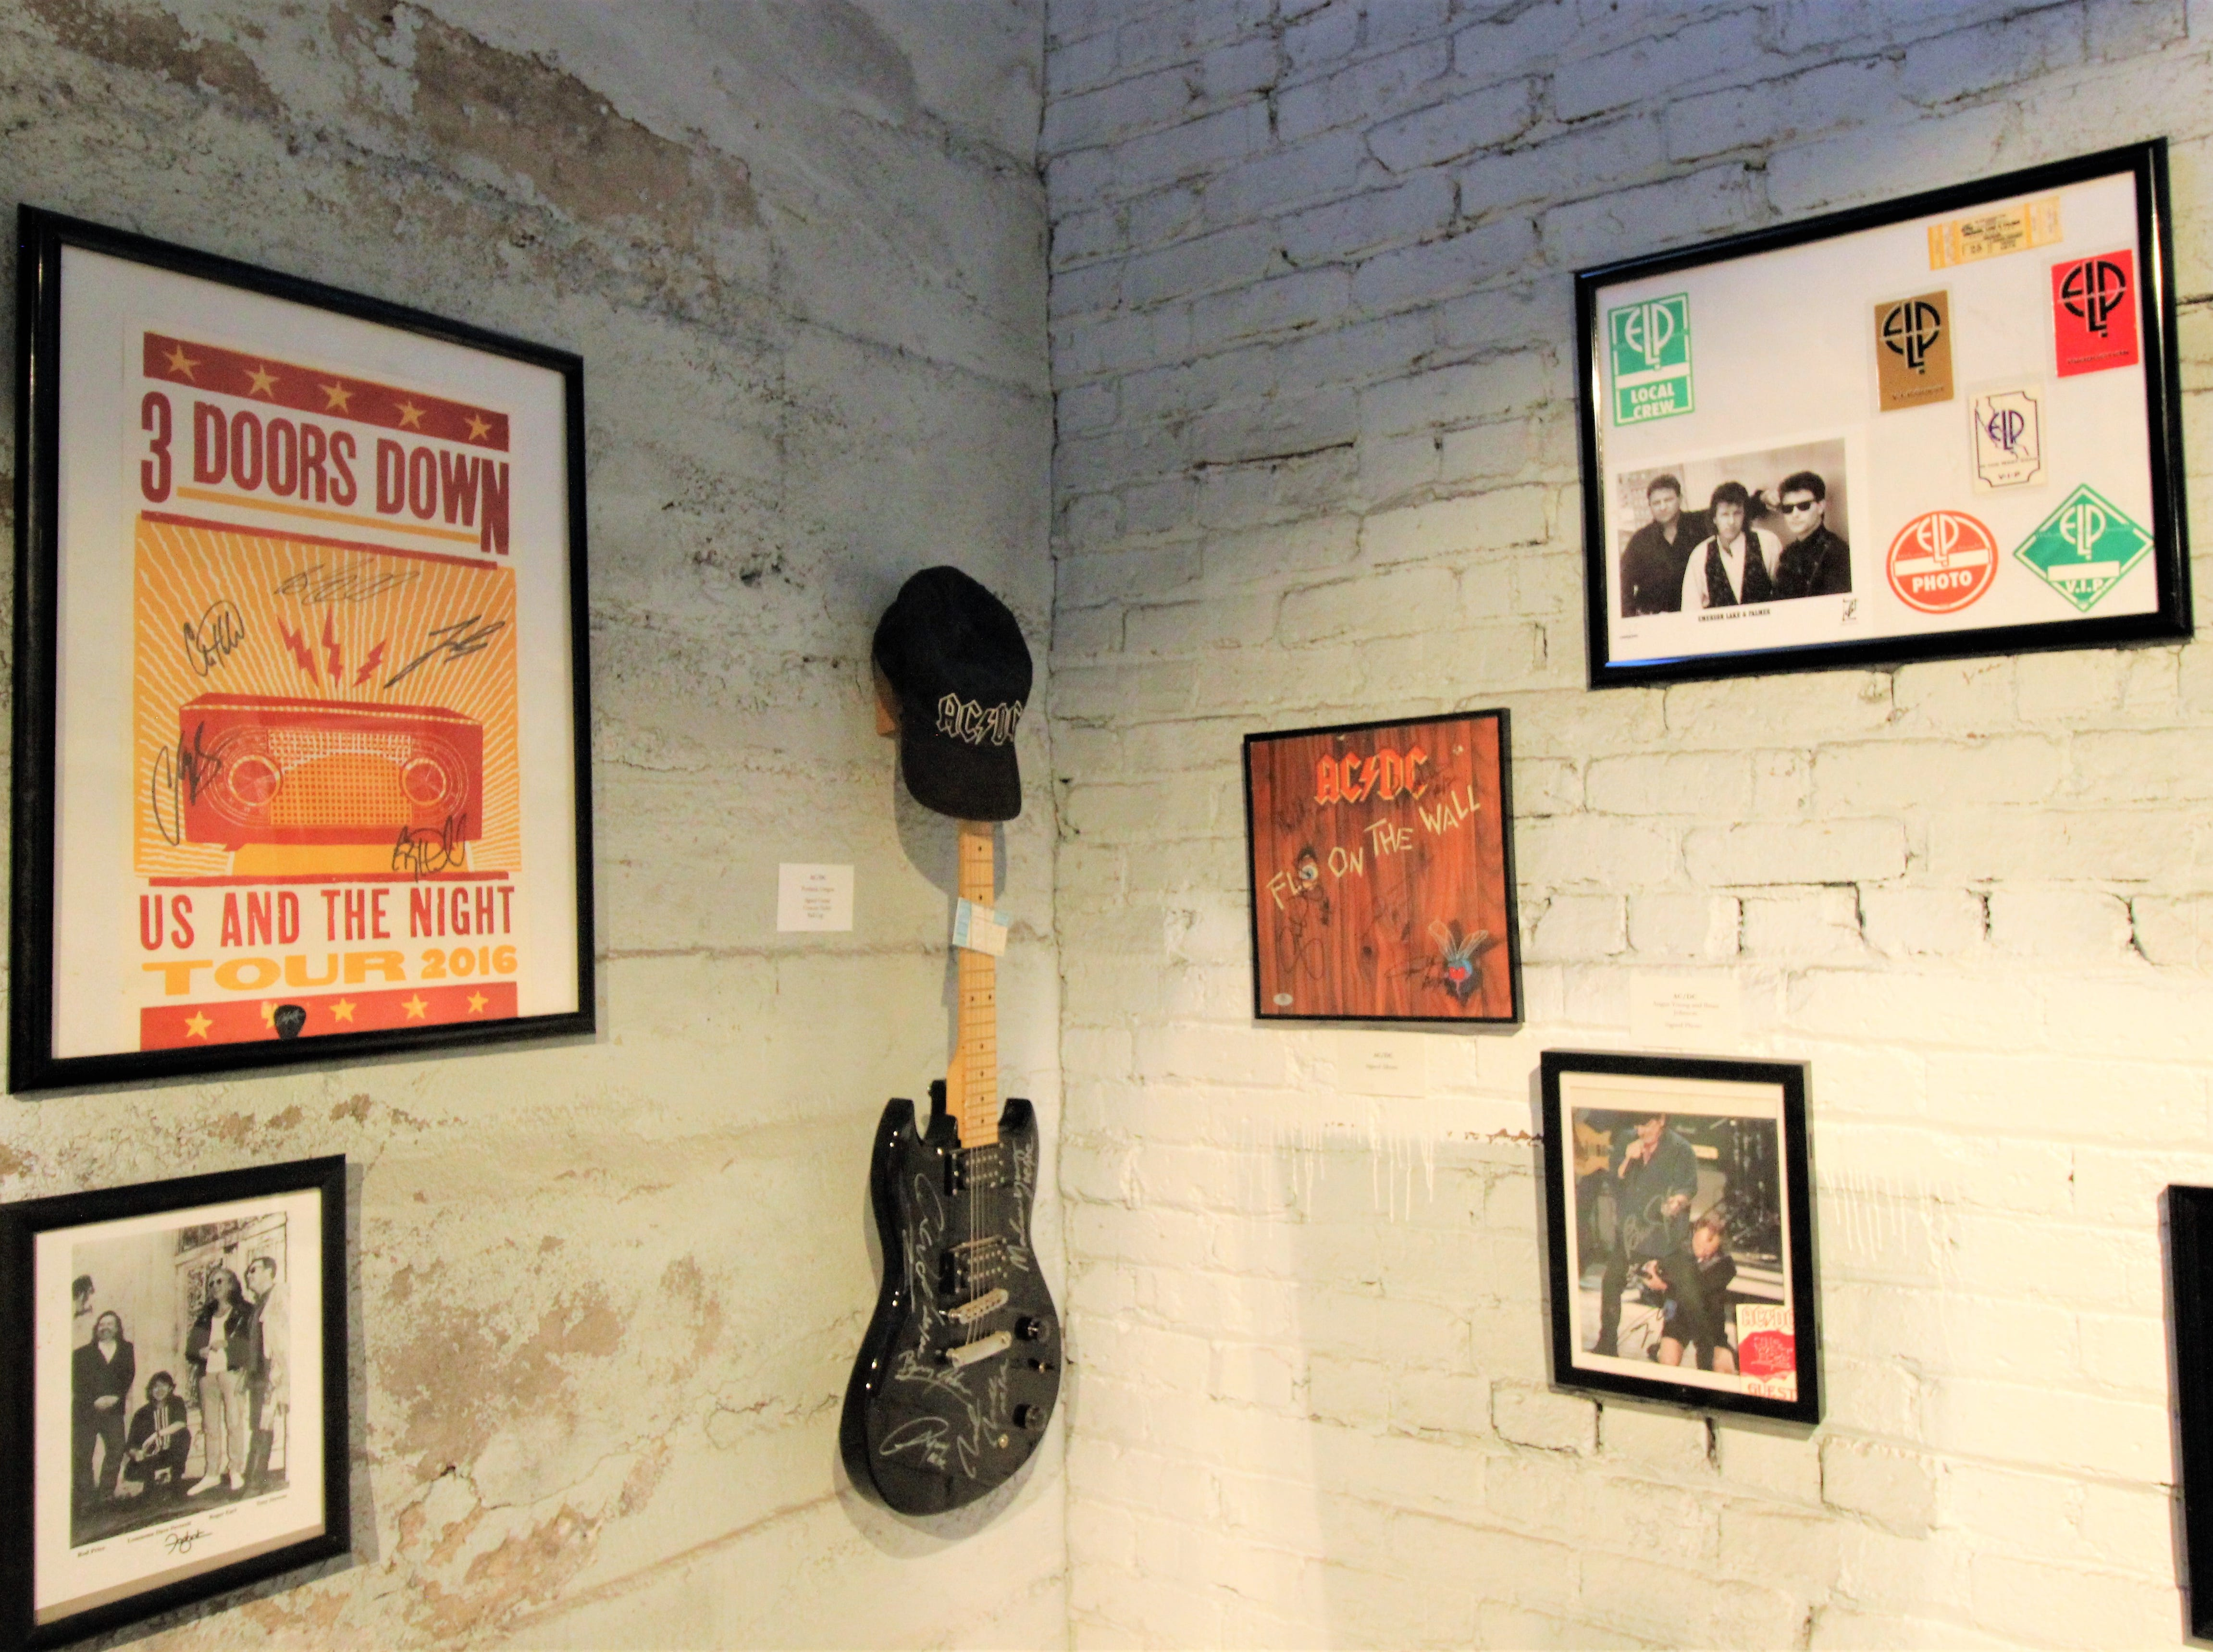 A singed guitar by AC/DC may be in a corner of the room, but it is a significant part of the collection from owner James Lane on display at the Carrizozo Rock and Roll Hall of Fame.